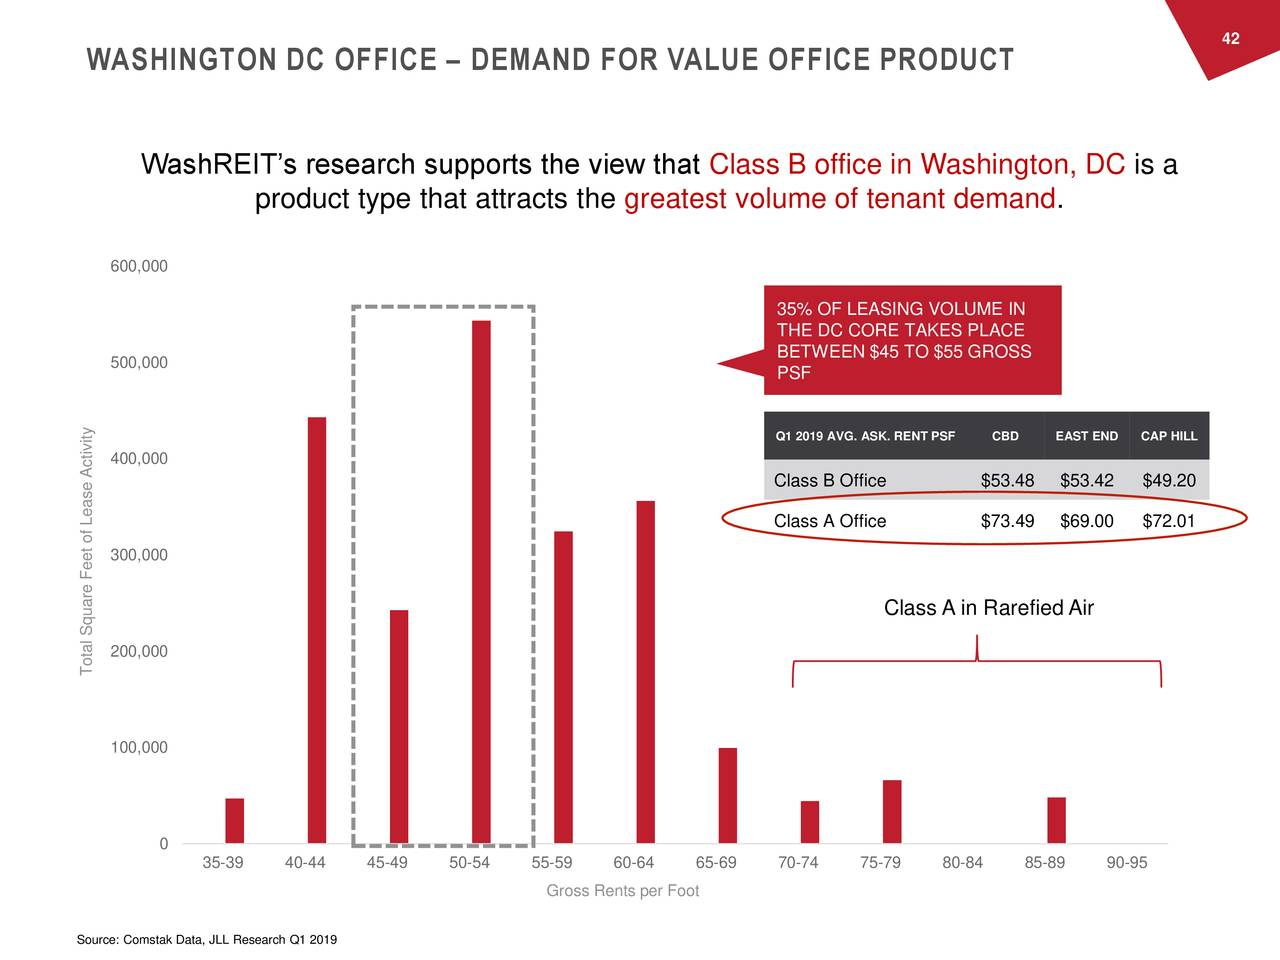 WASHINGTON DC OFFICE – DEMAND FOR VALUE OFFICE PRODUCT WashREIT's research supports the view that Class B office in Washington, DC is a product type that attracts the greatest volume of tenant demand. 600,000 35% OF LEASING VOLUME IN THE DC CORE TAKES PLACE 500,000 BETWEEN $45 TO $55 GROSS PSF Q1 2019 AVG. ASK. RENT PSCBD EAST END CAP HILL 400,000 Class B Office $53.48 $53.42 $49.20 Class A Office $73.49 $69.00 $72.01 300,000 Class A in RarefiedAir 200,000 Total Square Feet of Lease Activity 100,000 0 35-39 40-44 45-49 50-54 55-59 60-64 65-69 70-74 75-79 80-84 85-89 90-95 Gross Rents per Foot Source: Comstak Data, JLL Research Q1 2019